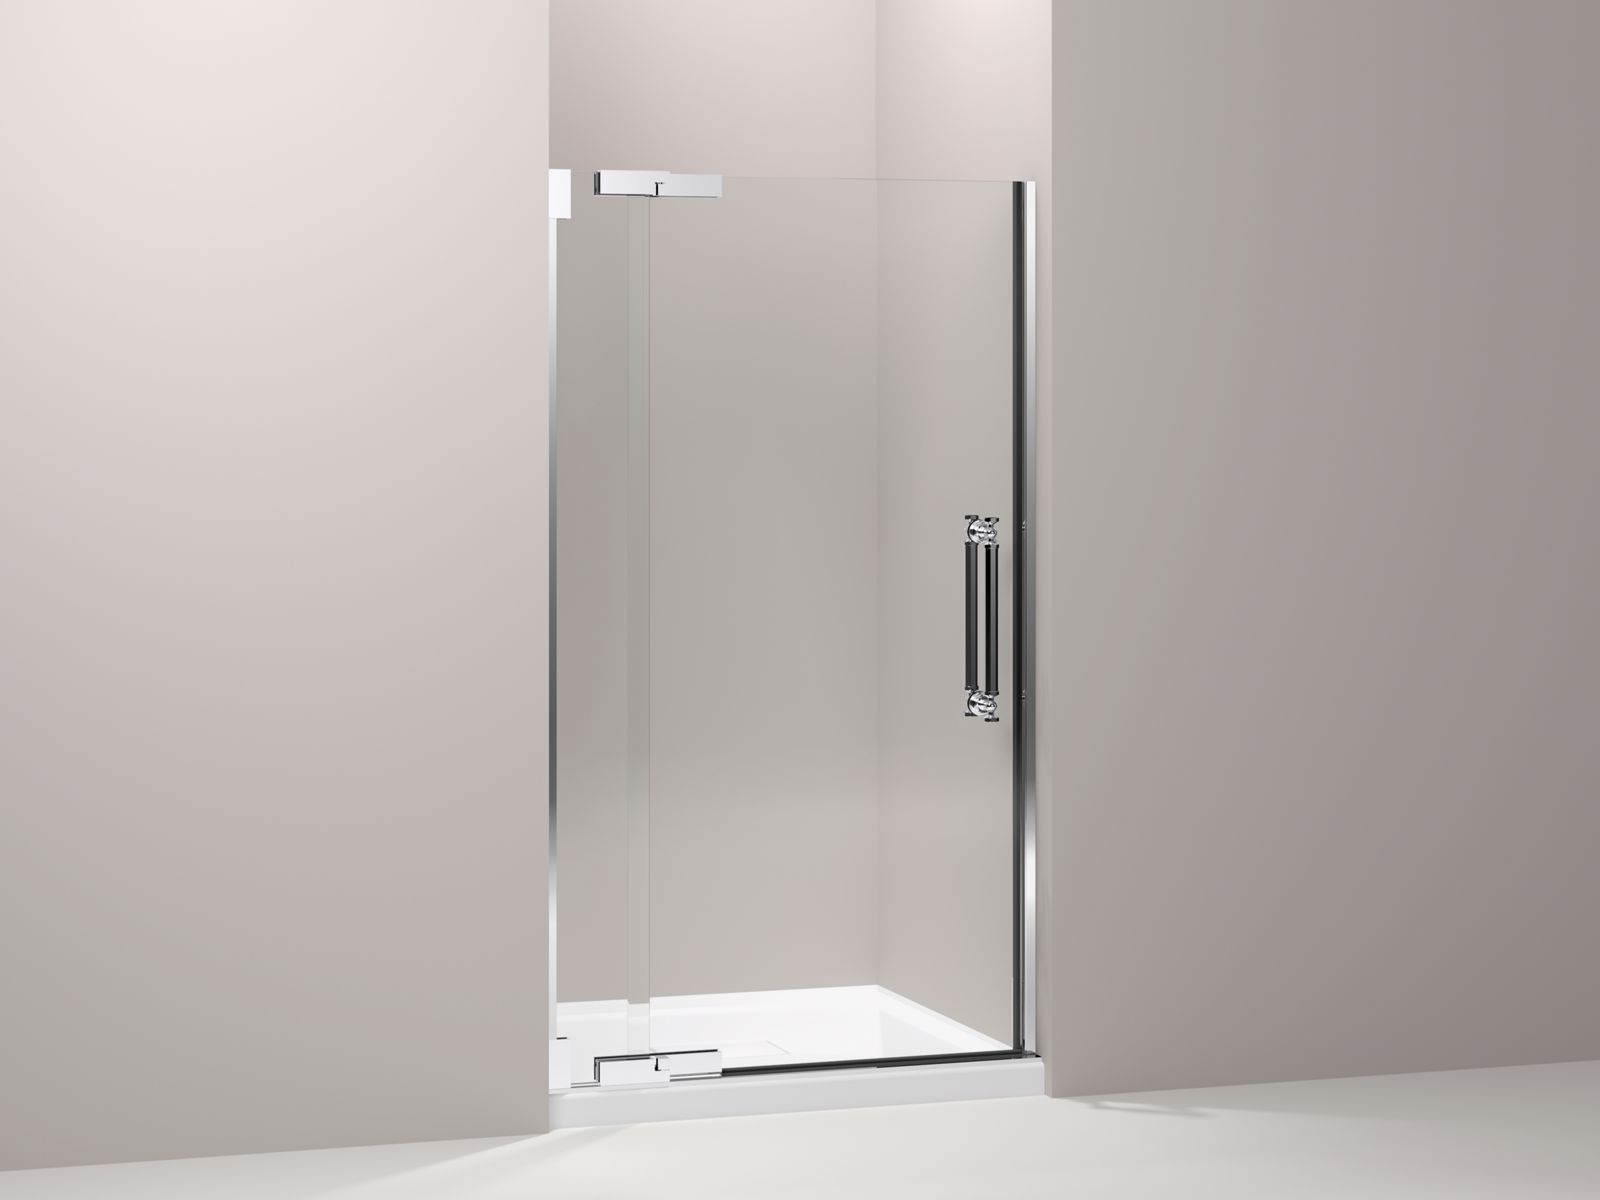 Shown with Archer® shower base K-9393-0, not included.